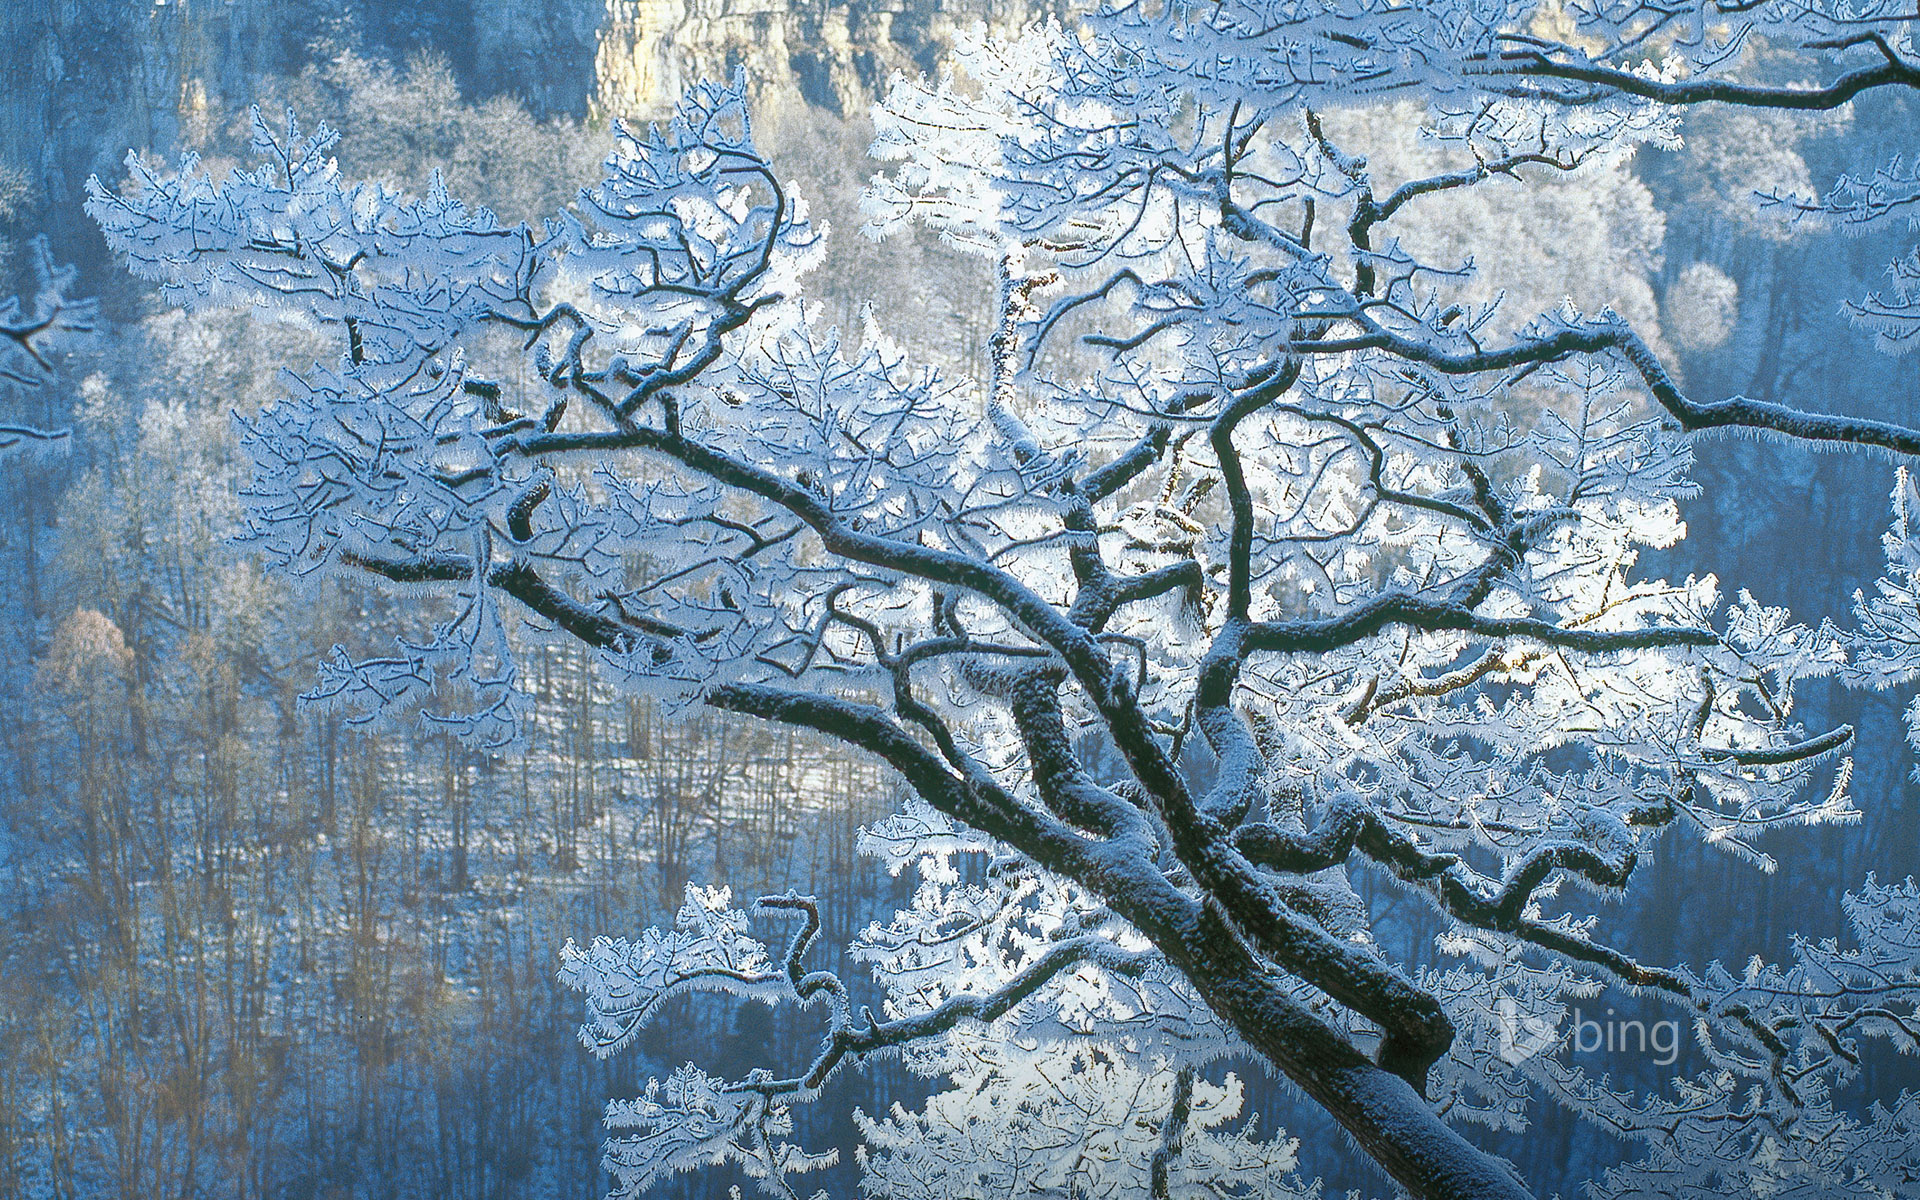 Oak branches covered in ice, Jura, France